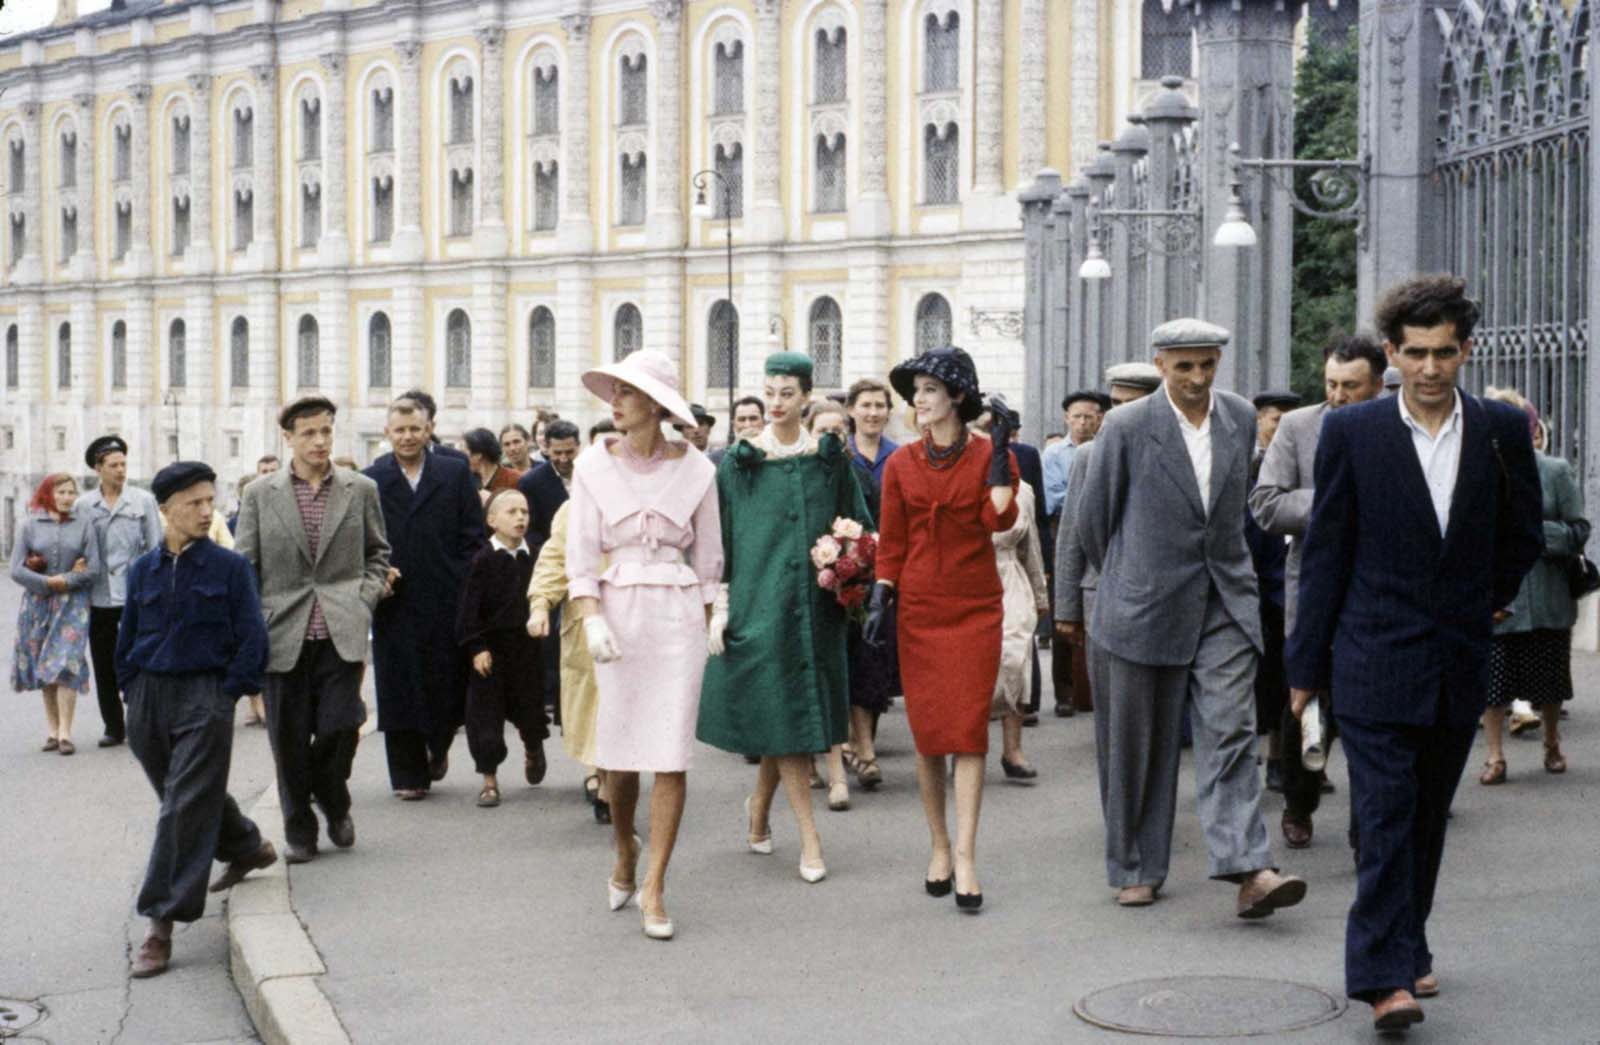 Trailed by a crowd of locals, a trio of Dior fashion models including model Kouka Denis walk along a sidewalk, Moscow, Soviet Union, 1959.